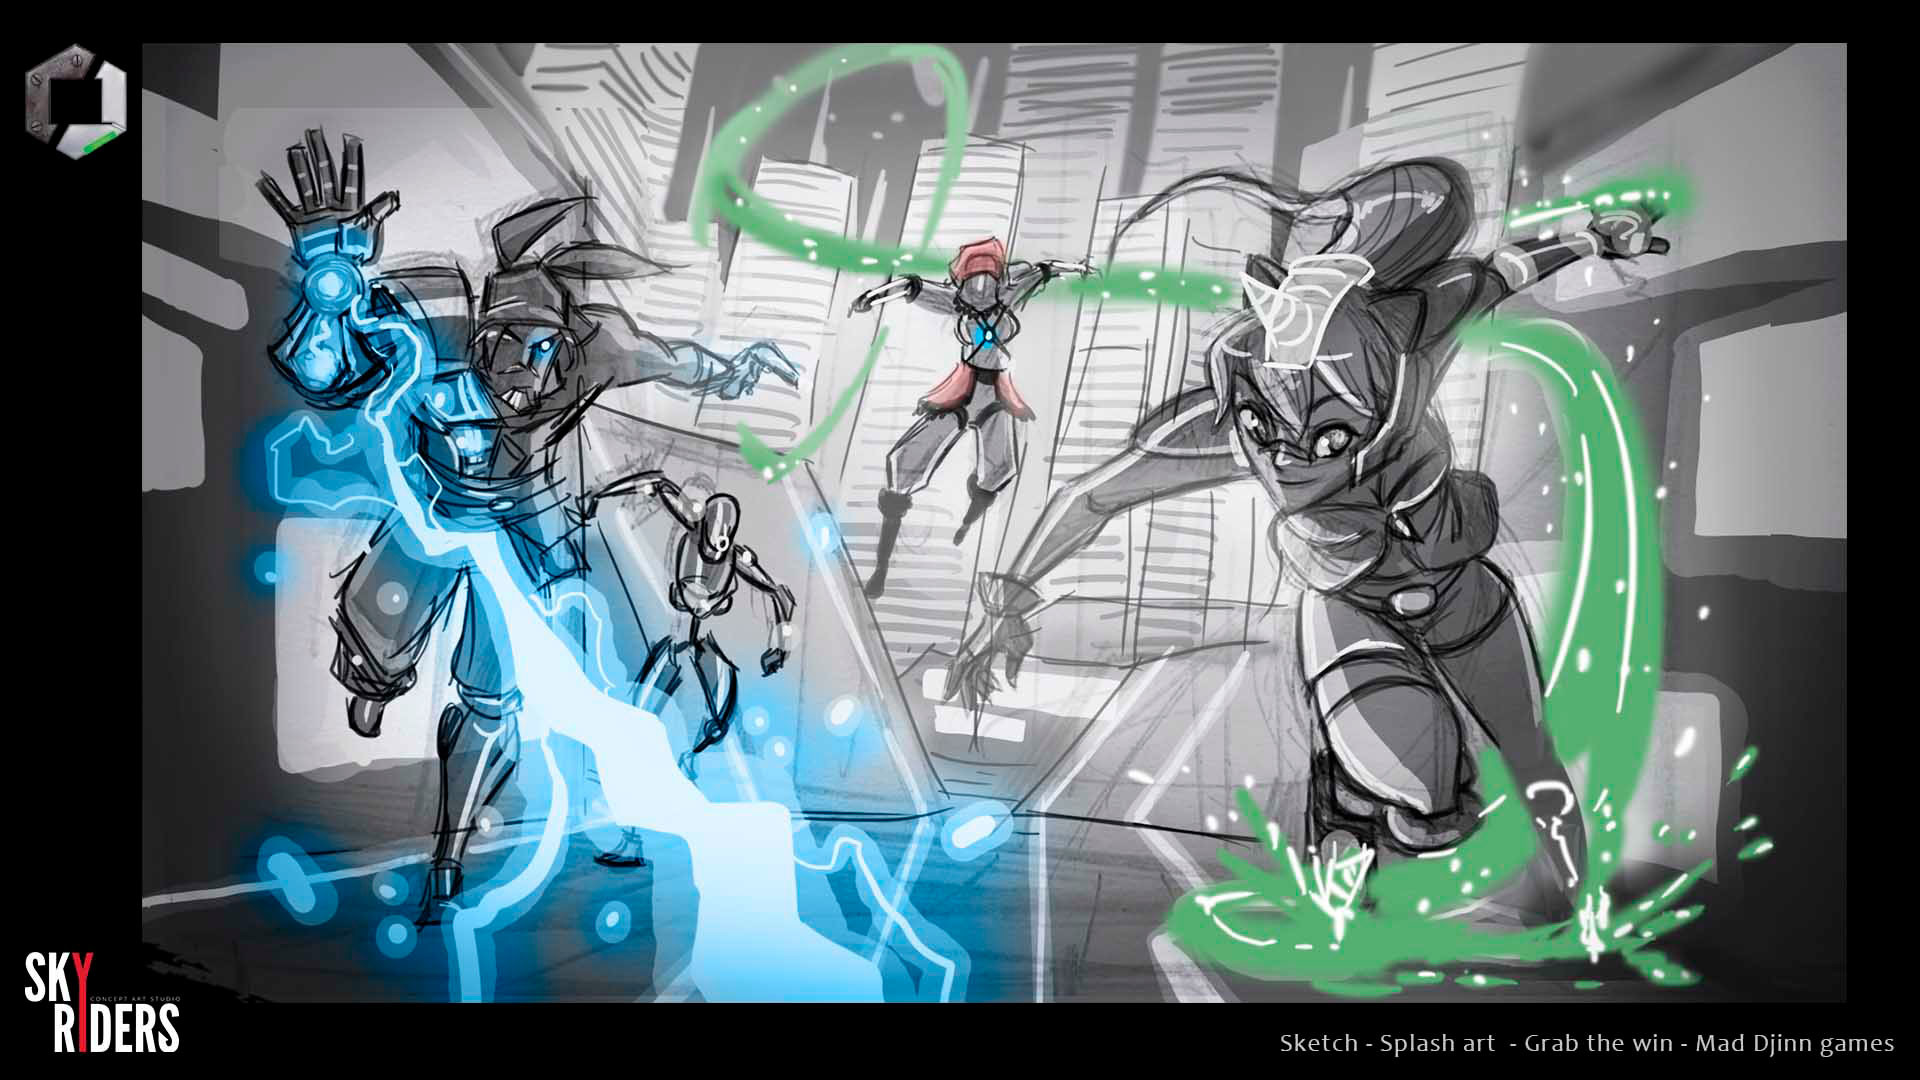 Sky riders grab the win sketches 03